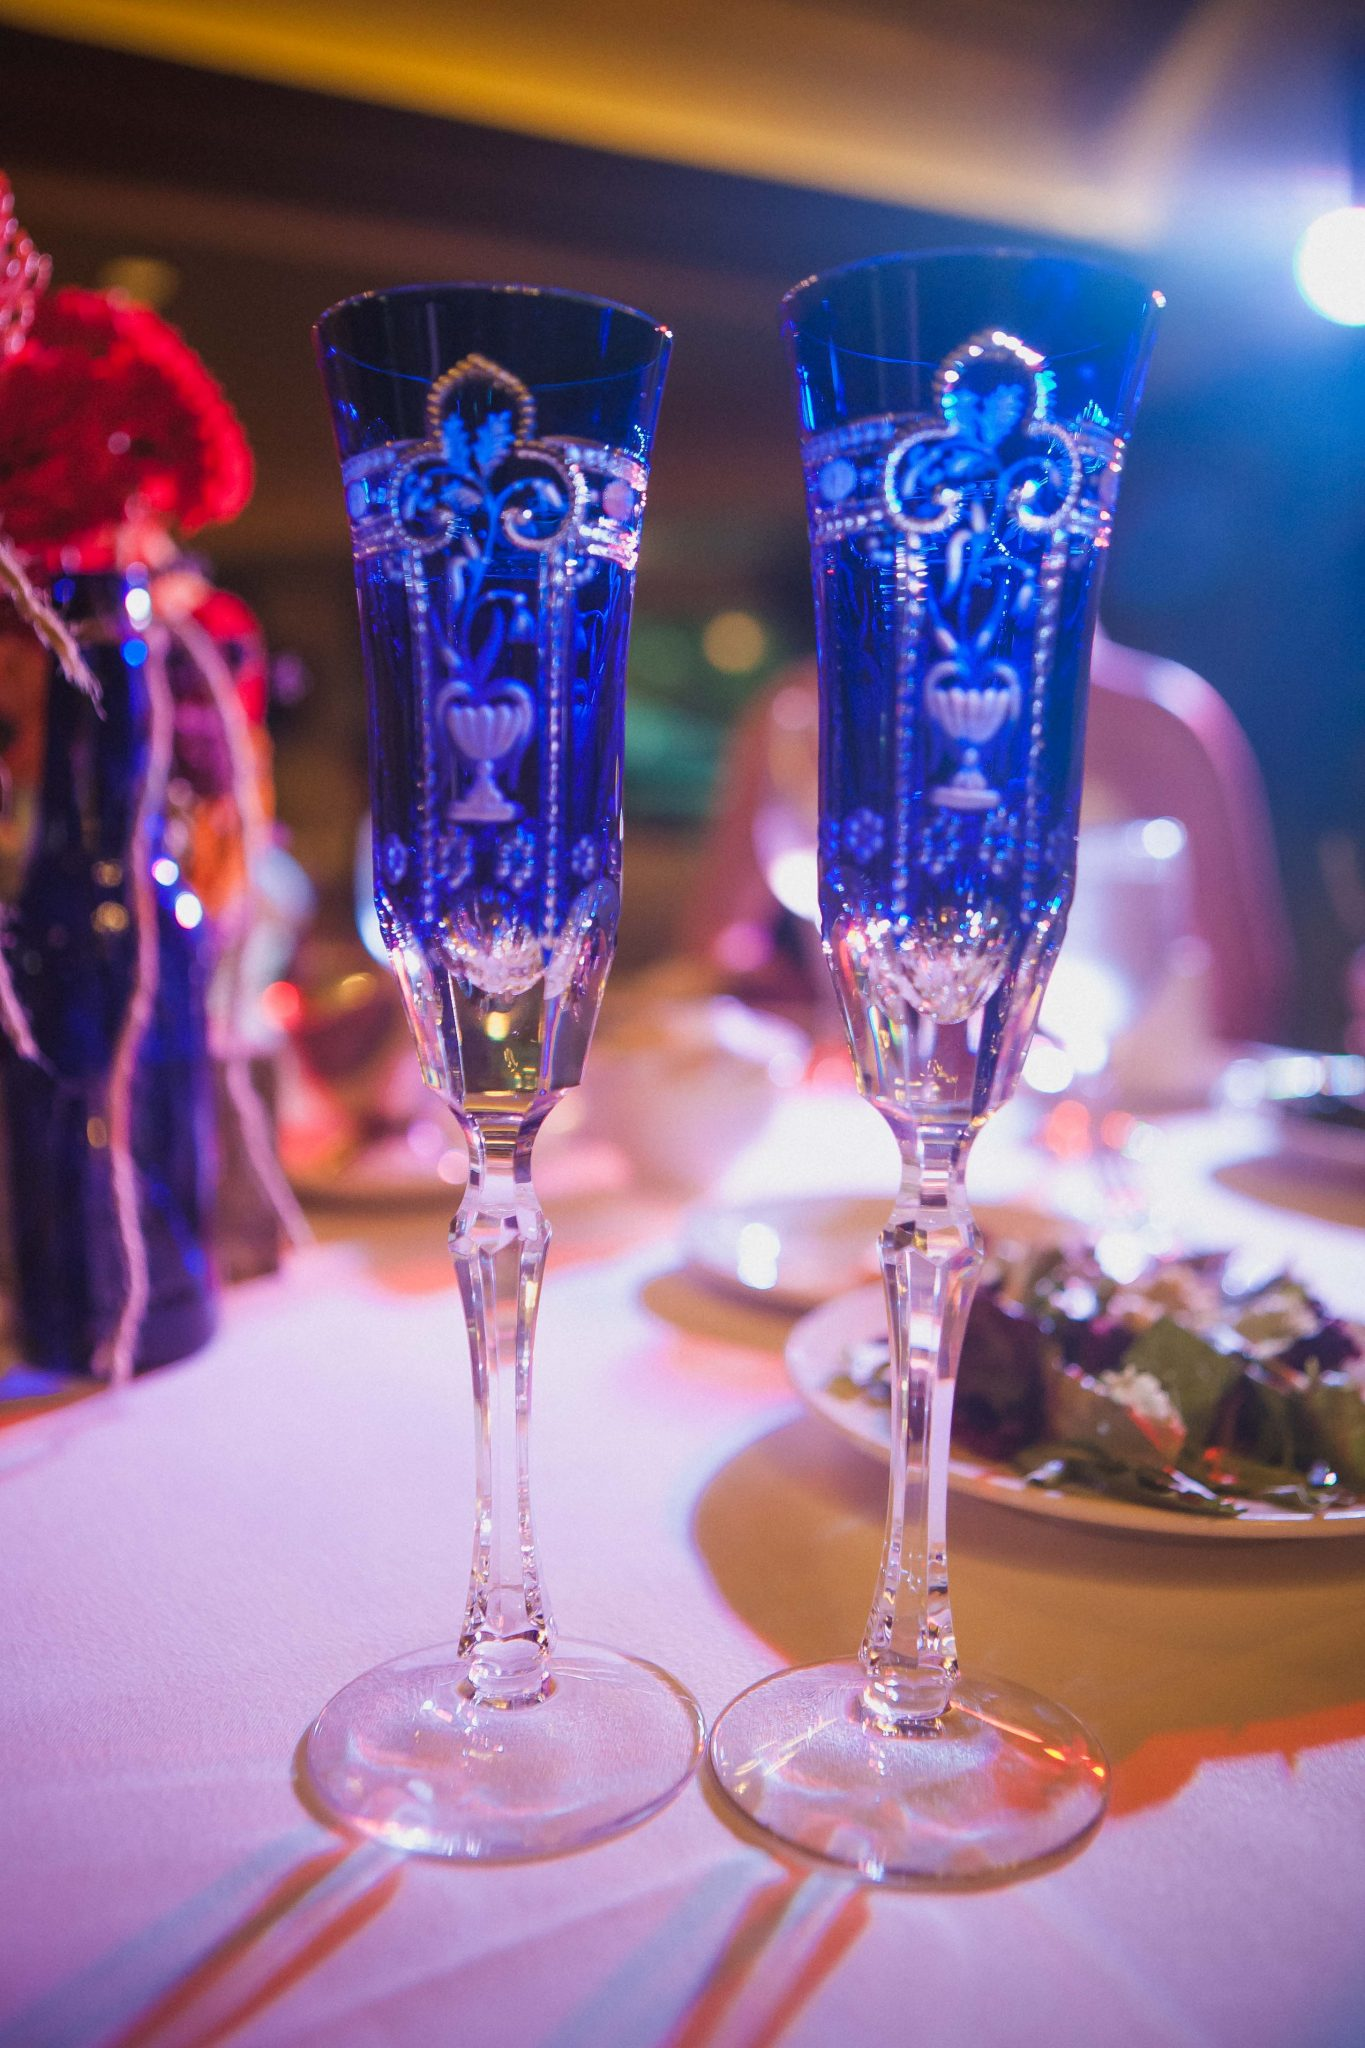 Blue glass champagne flutes for the bride and groom on their wedding day